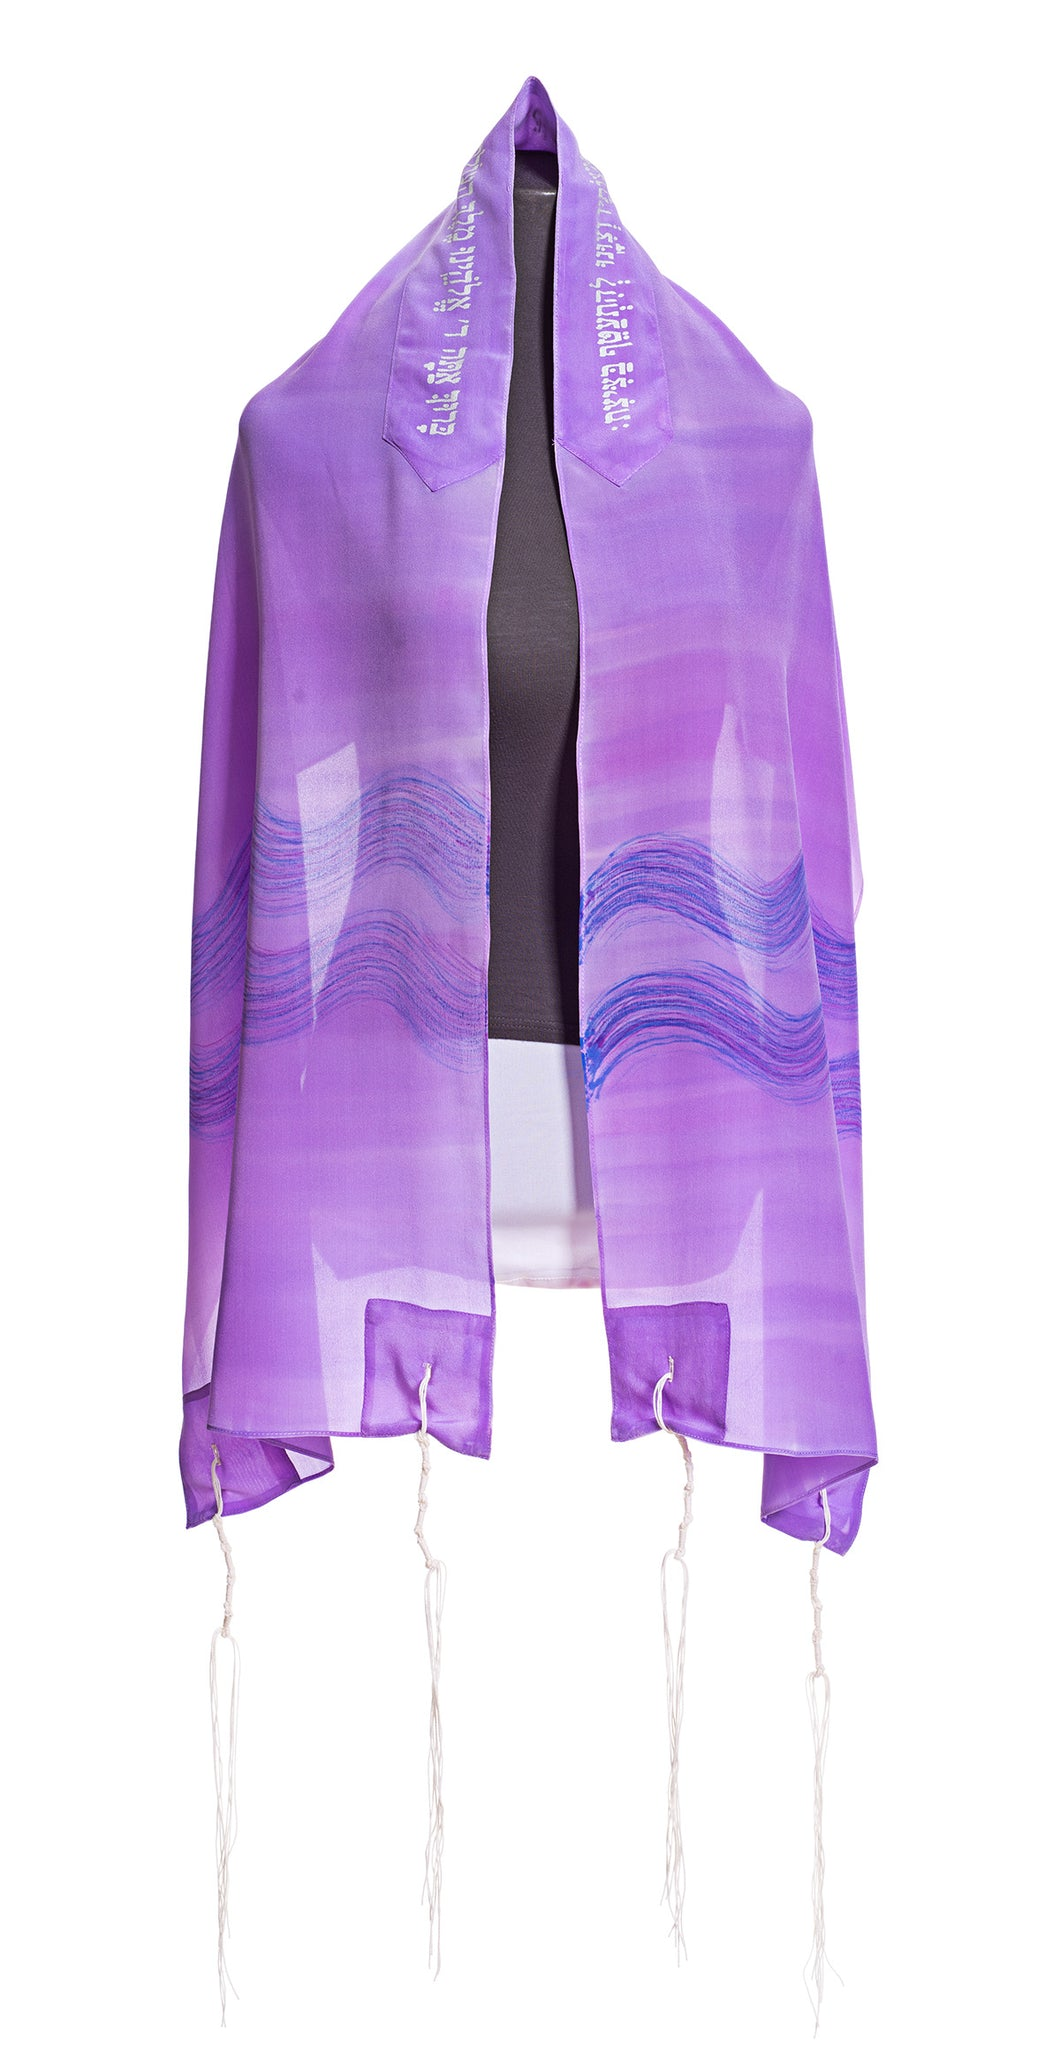 Purple Tallit With Wave Decoration, Bat Mitzvah Tallit, Silk Tallit - Galilee Silks